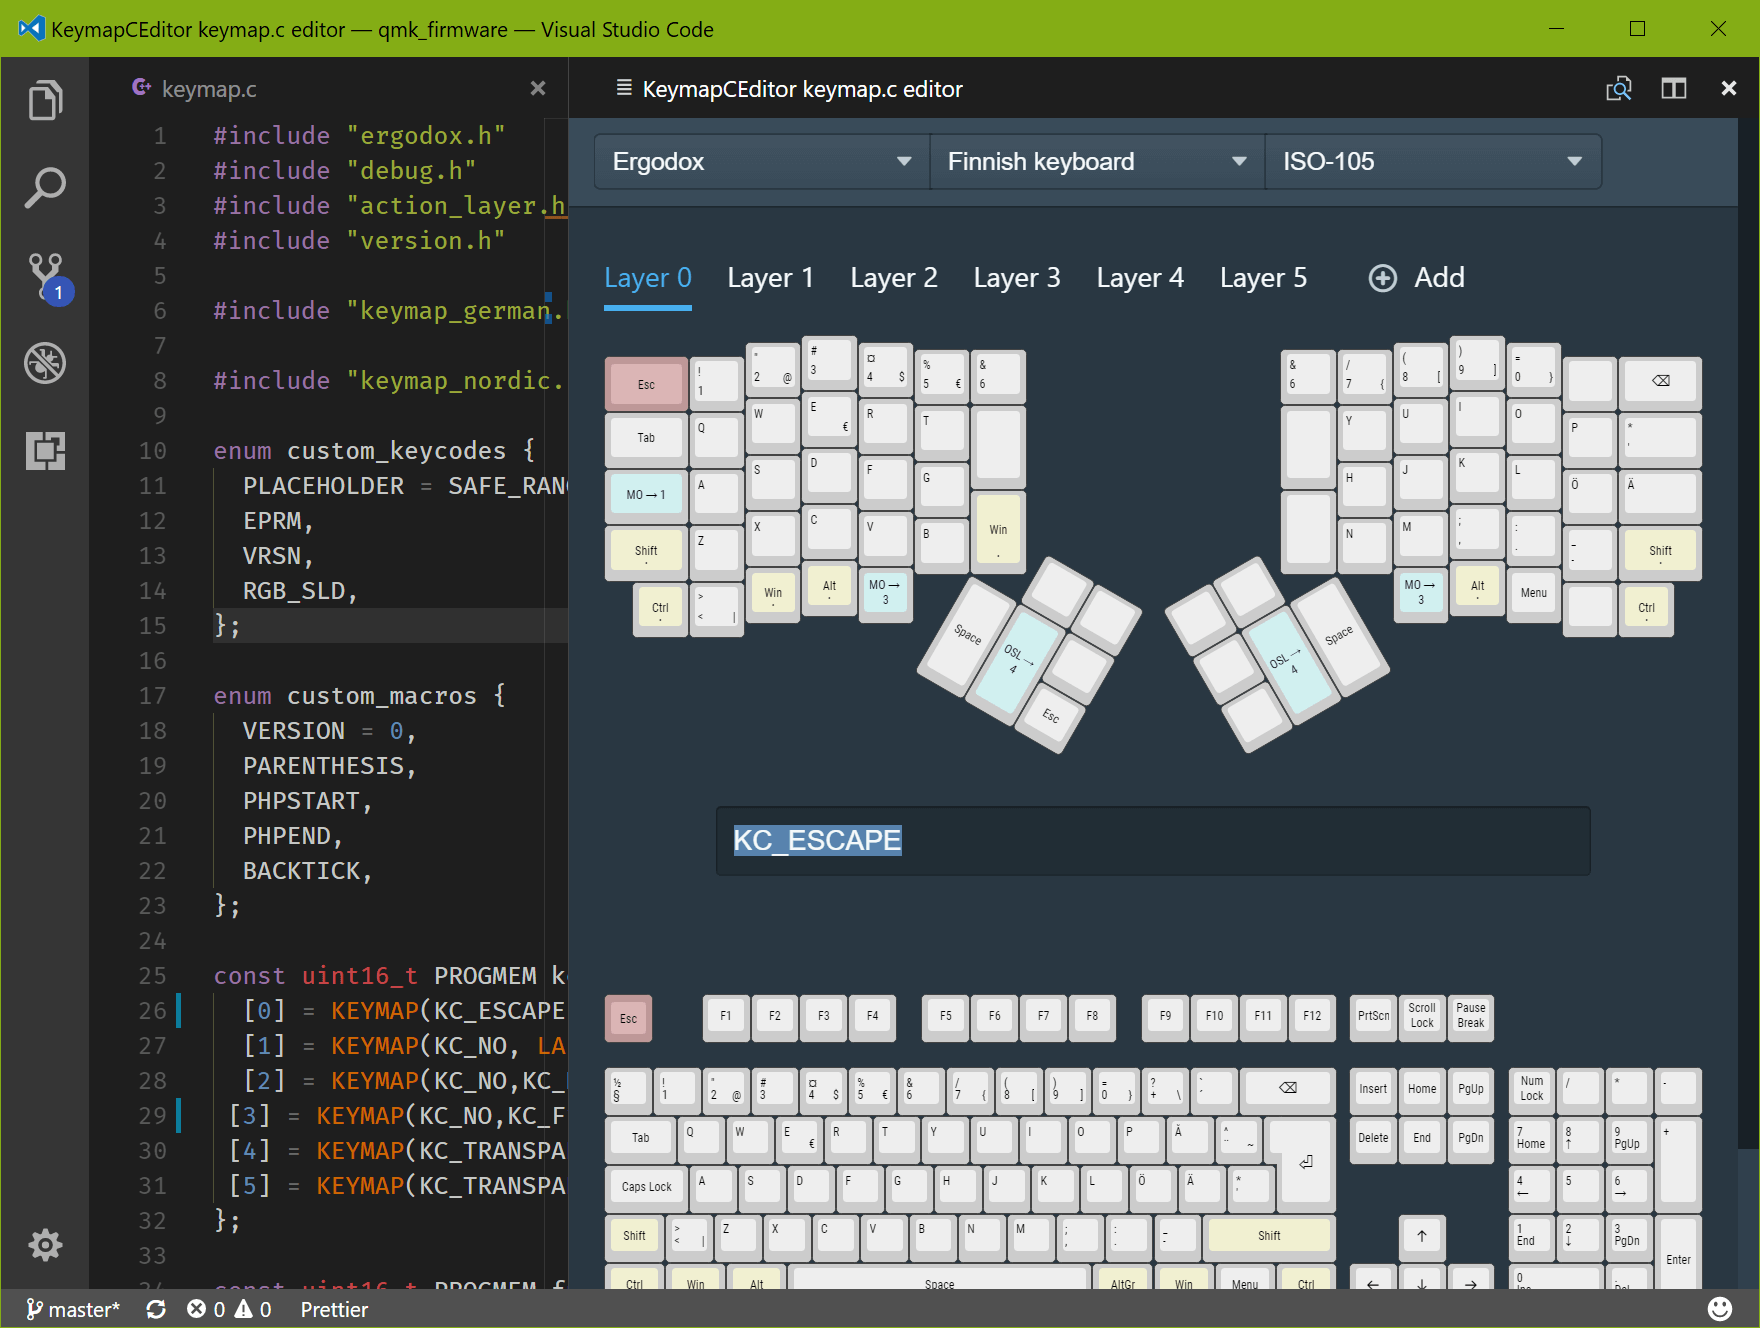 Screenshot of the KeymapCEditor in action